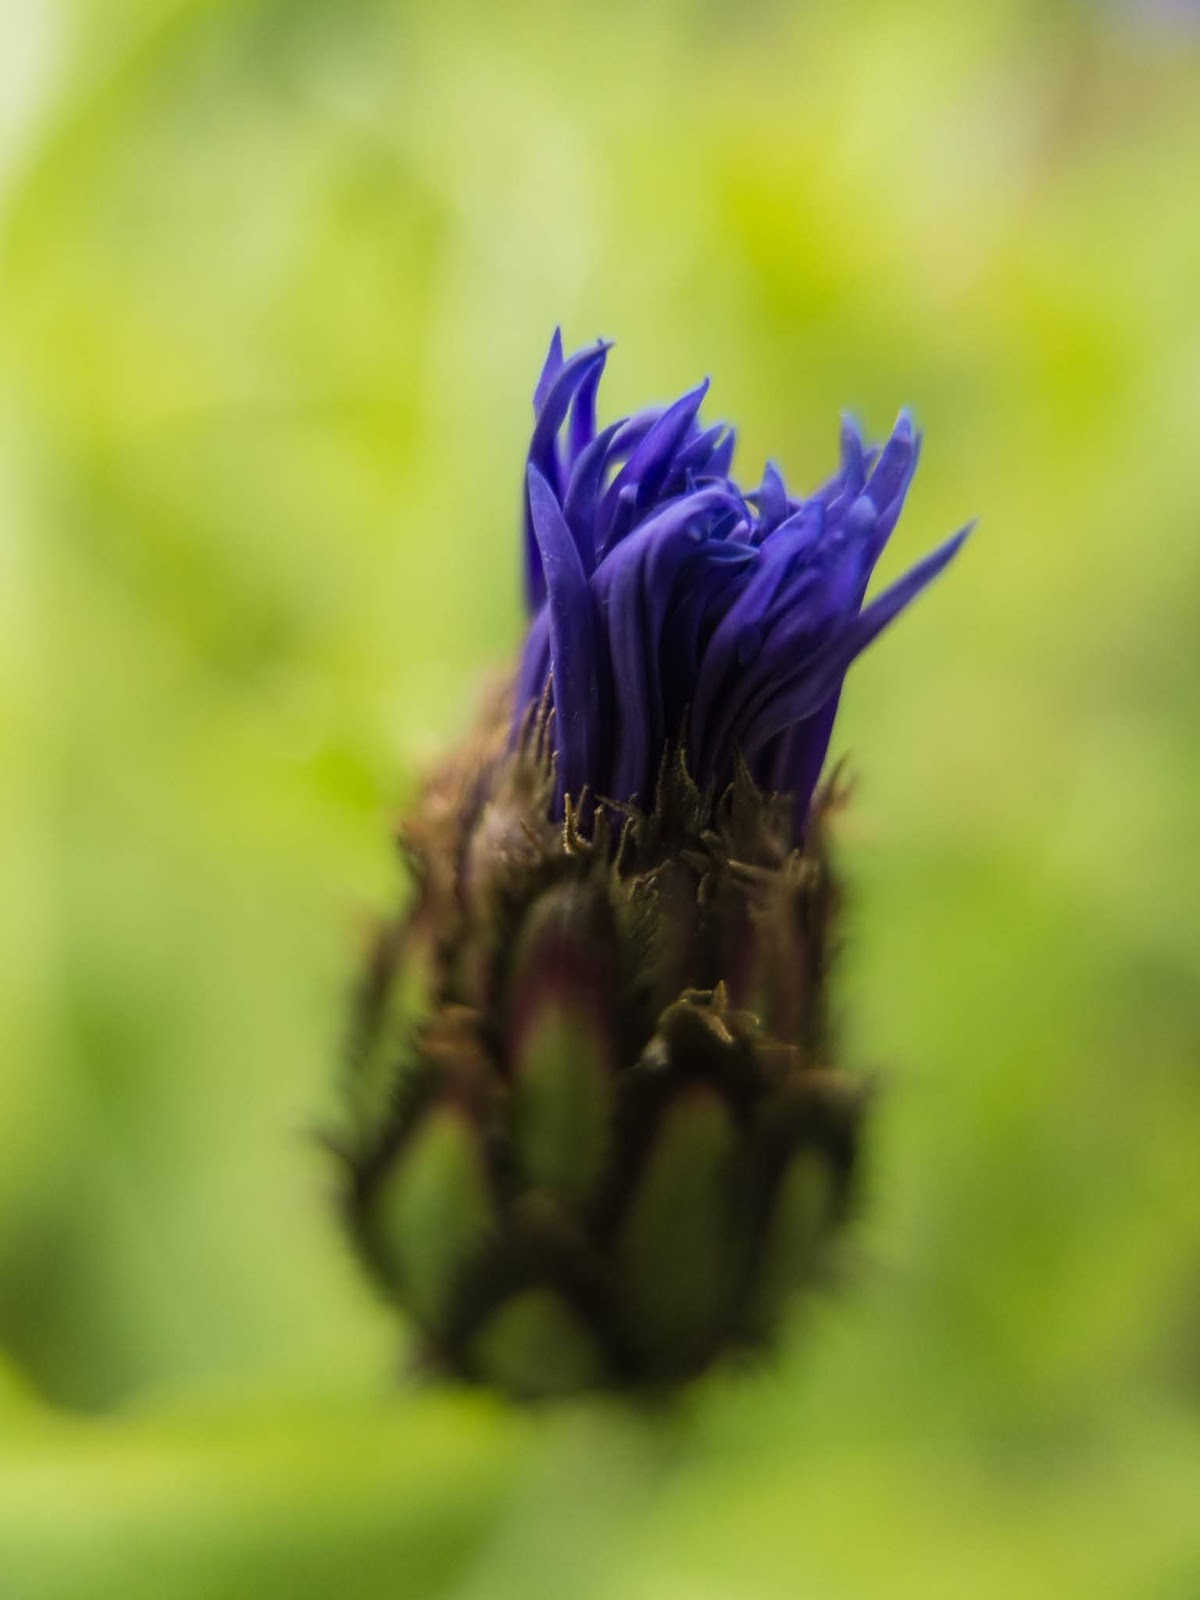 A macro of a purple Bachelor's Button flower bud.